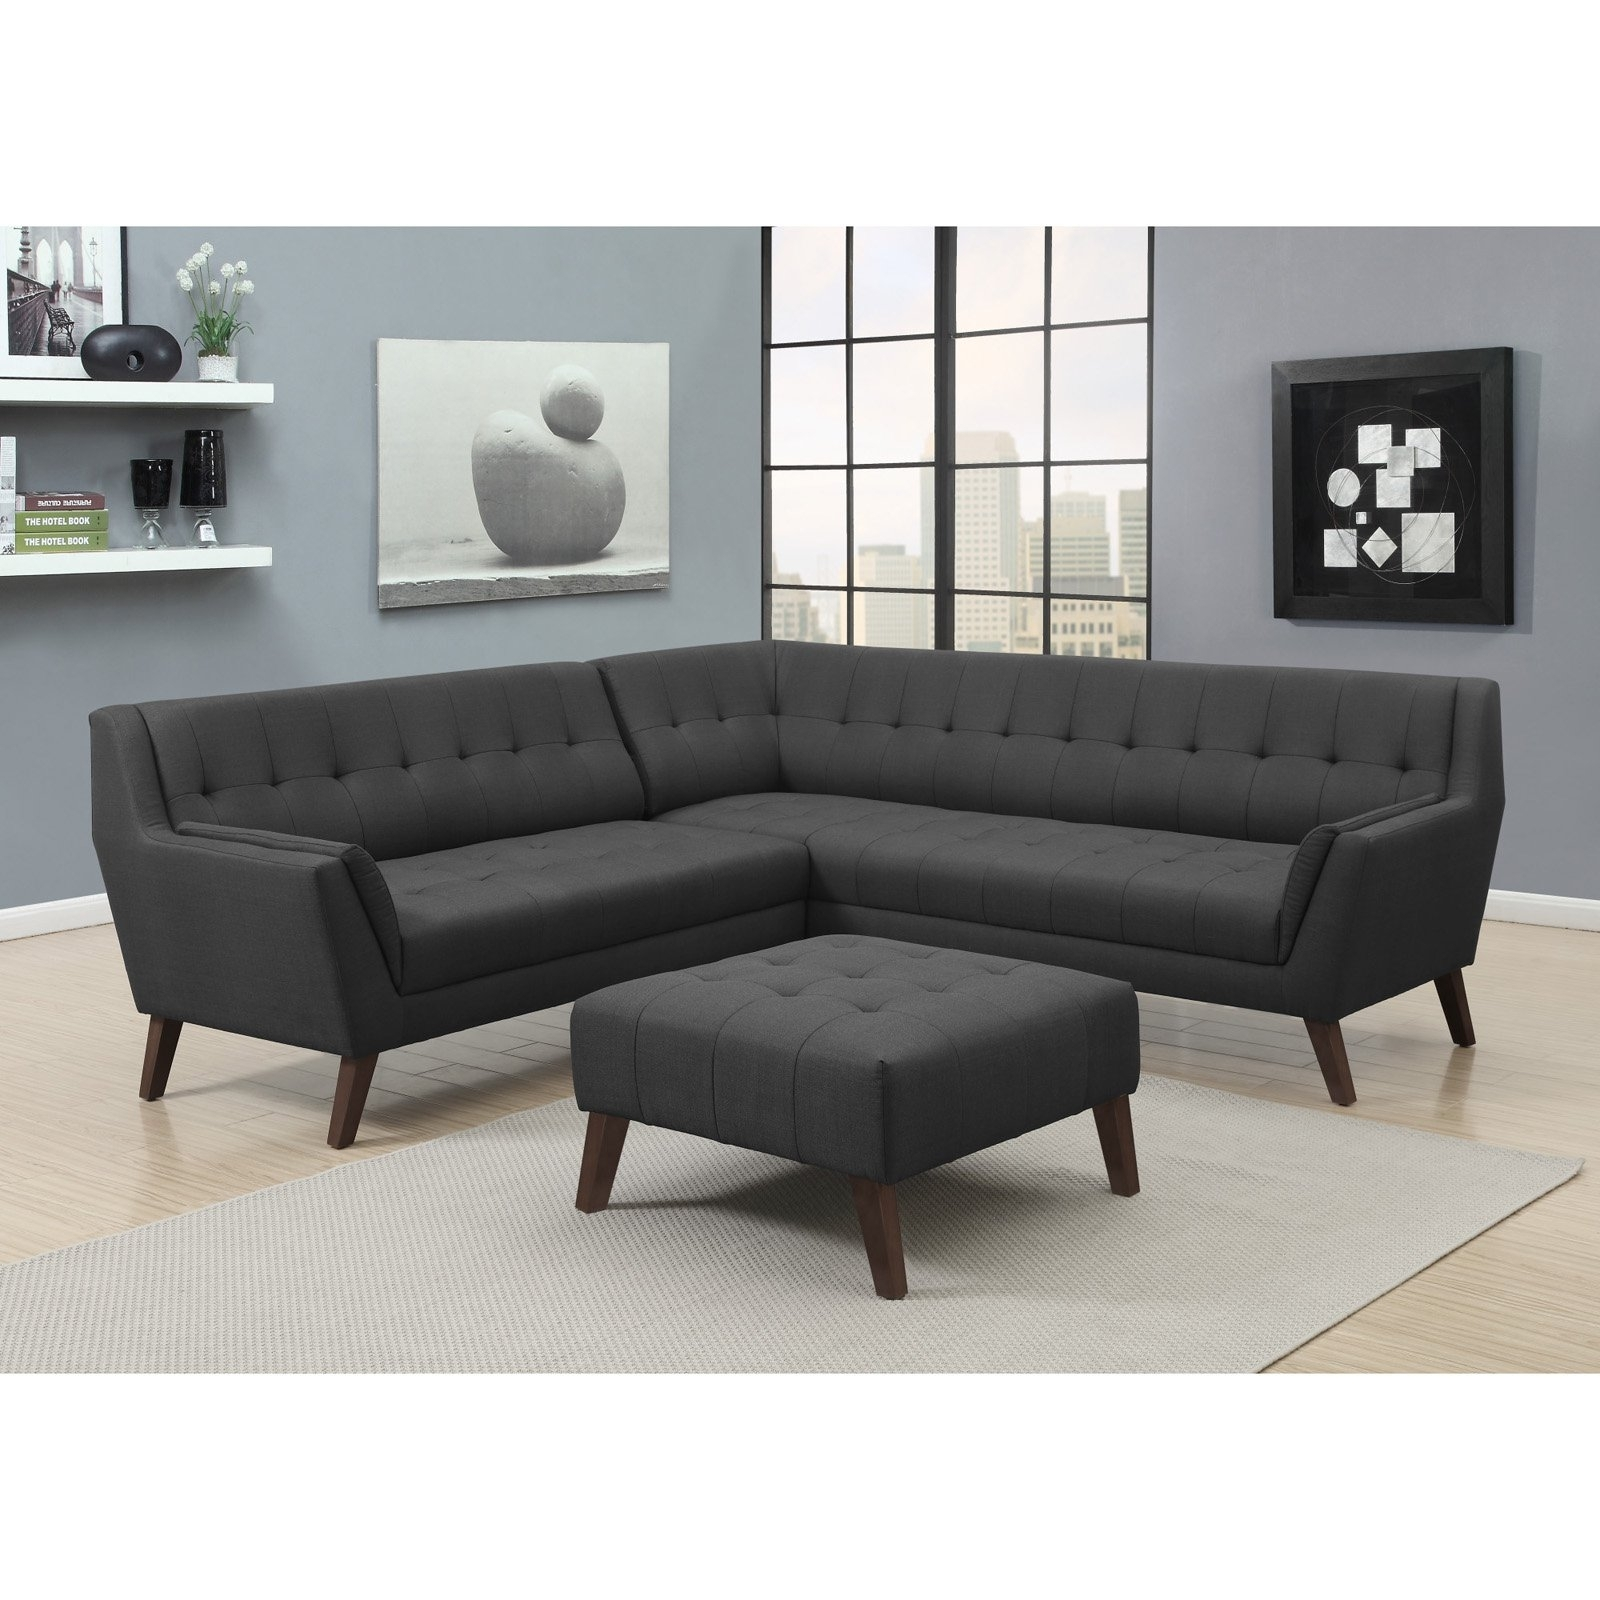 Emerald Home Binetti 2 Piece Sectional | Hayneedle for Norfolk Grey 6 Piece Sectionals (Image 12 of 30)